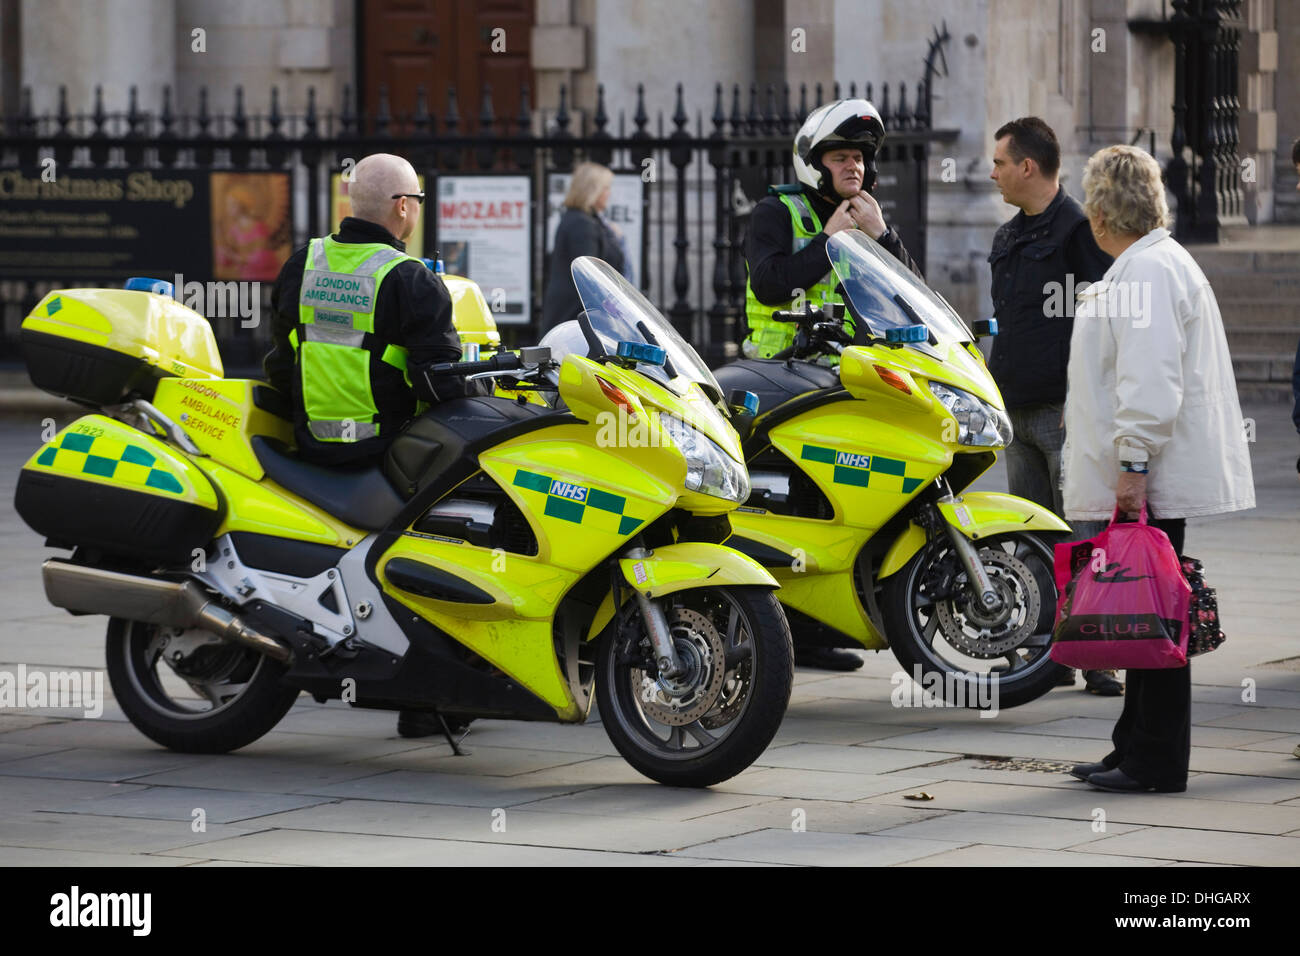 NHS Motorcycle Ambulance Service England - Stock Image